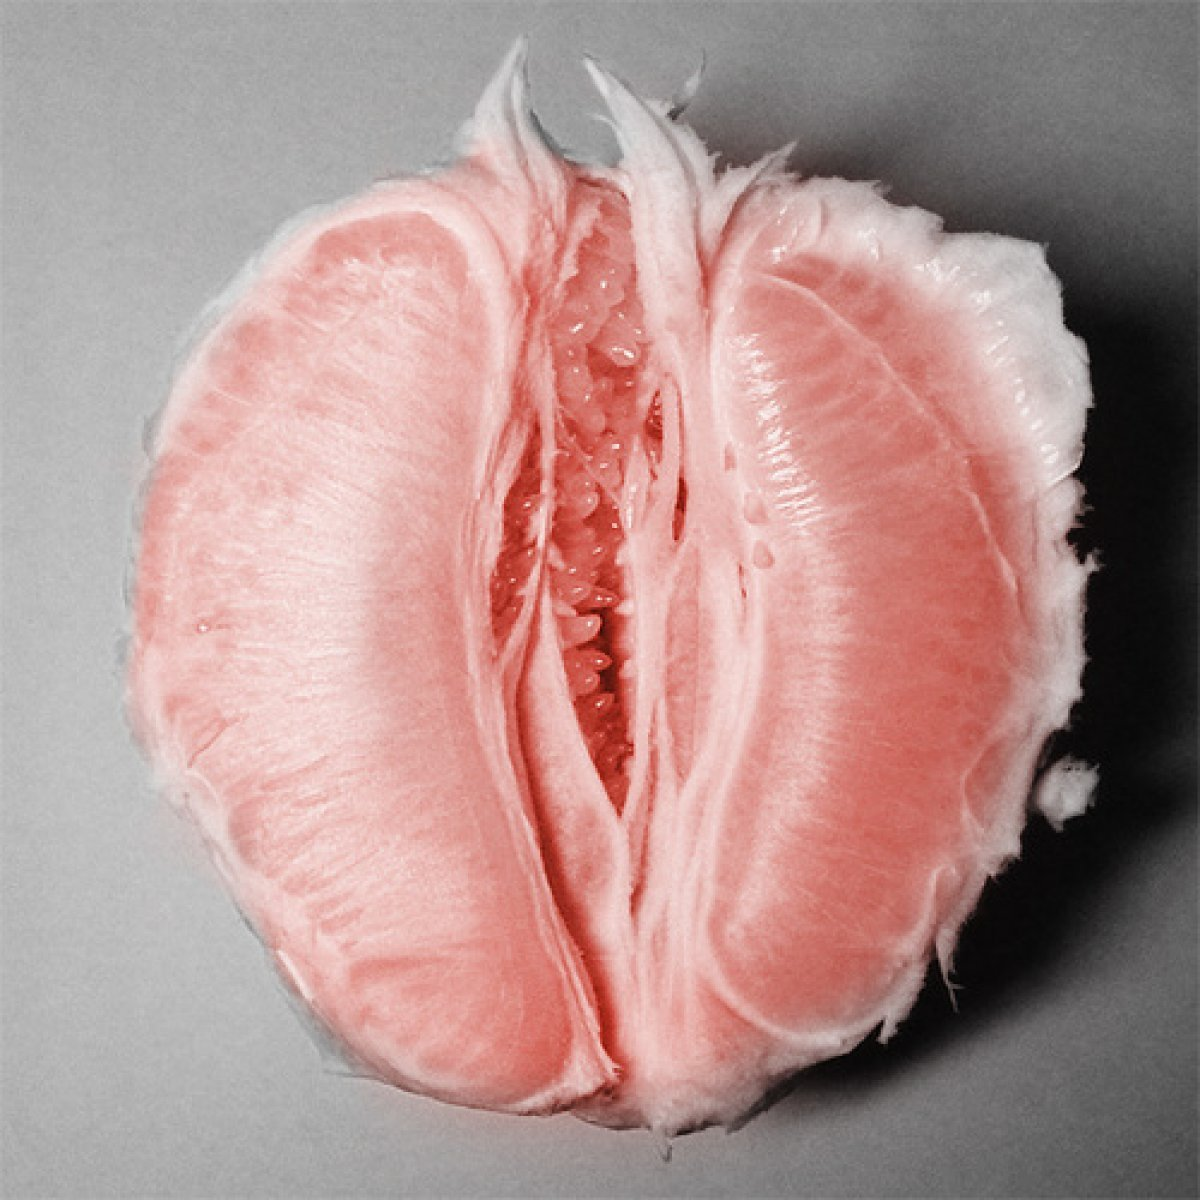 beautiful human vulva